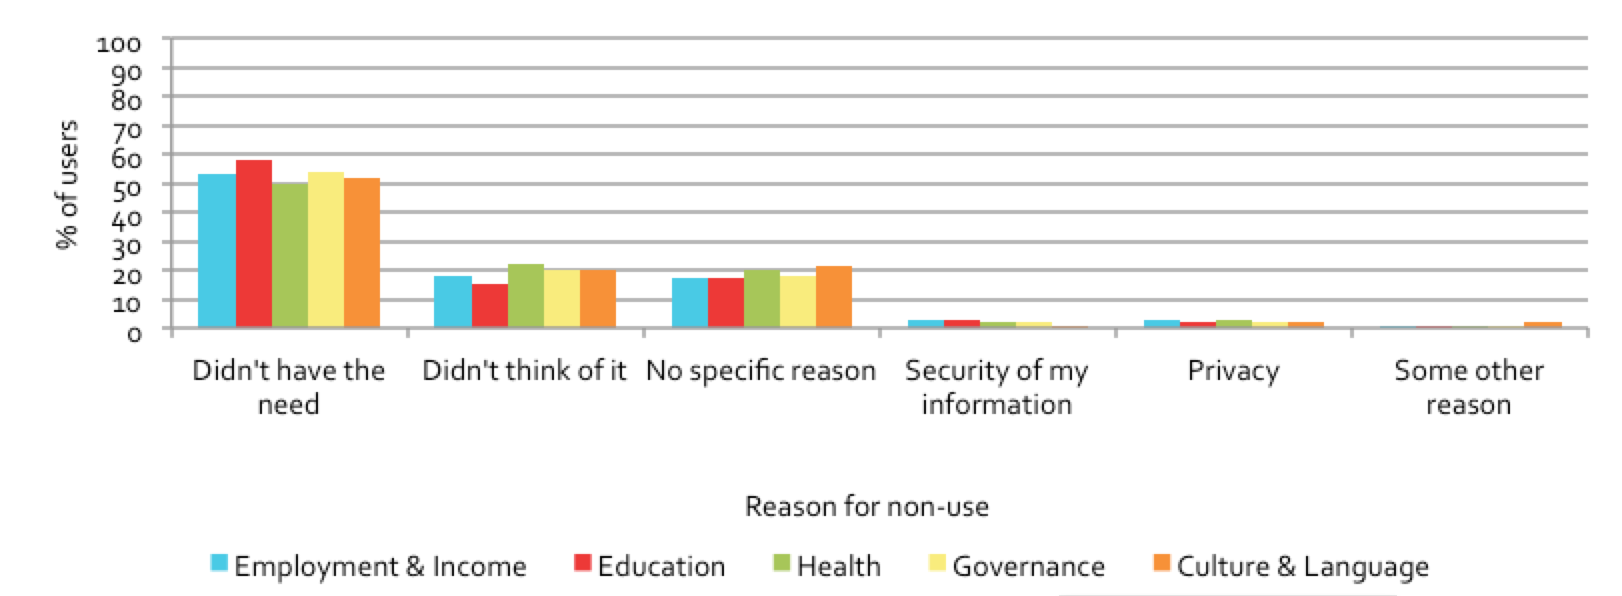 Figure 5.2: Reasons for non-use, by domain